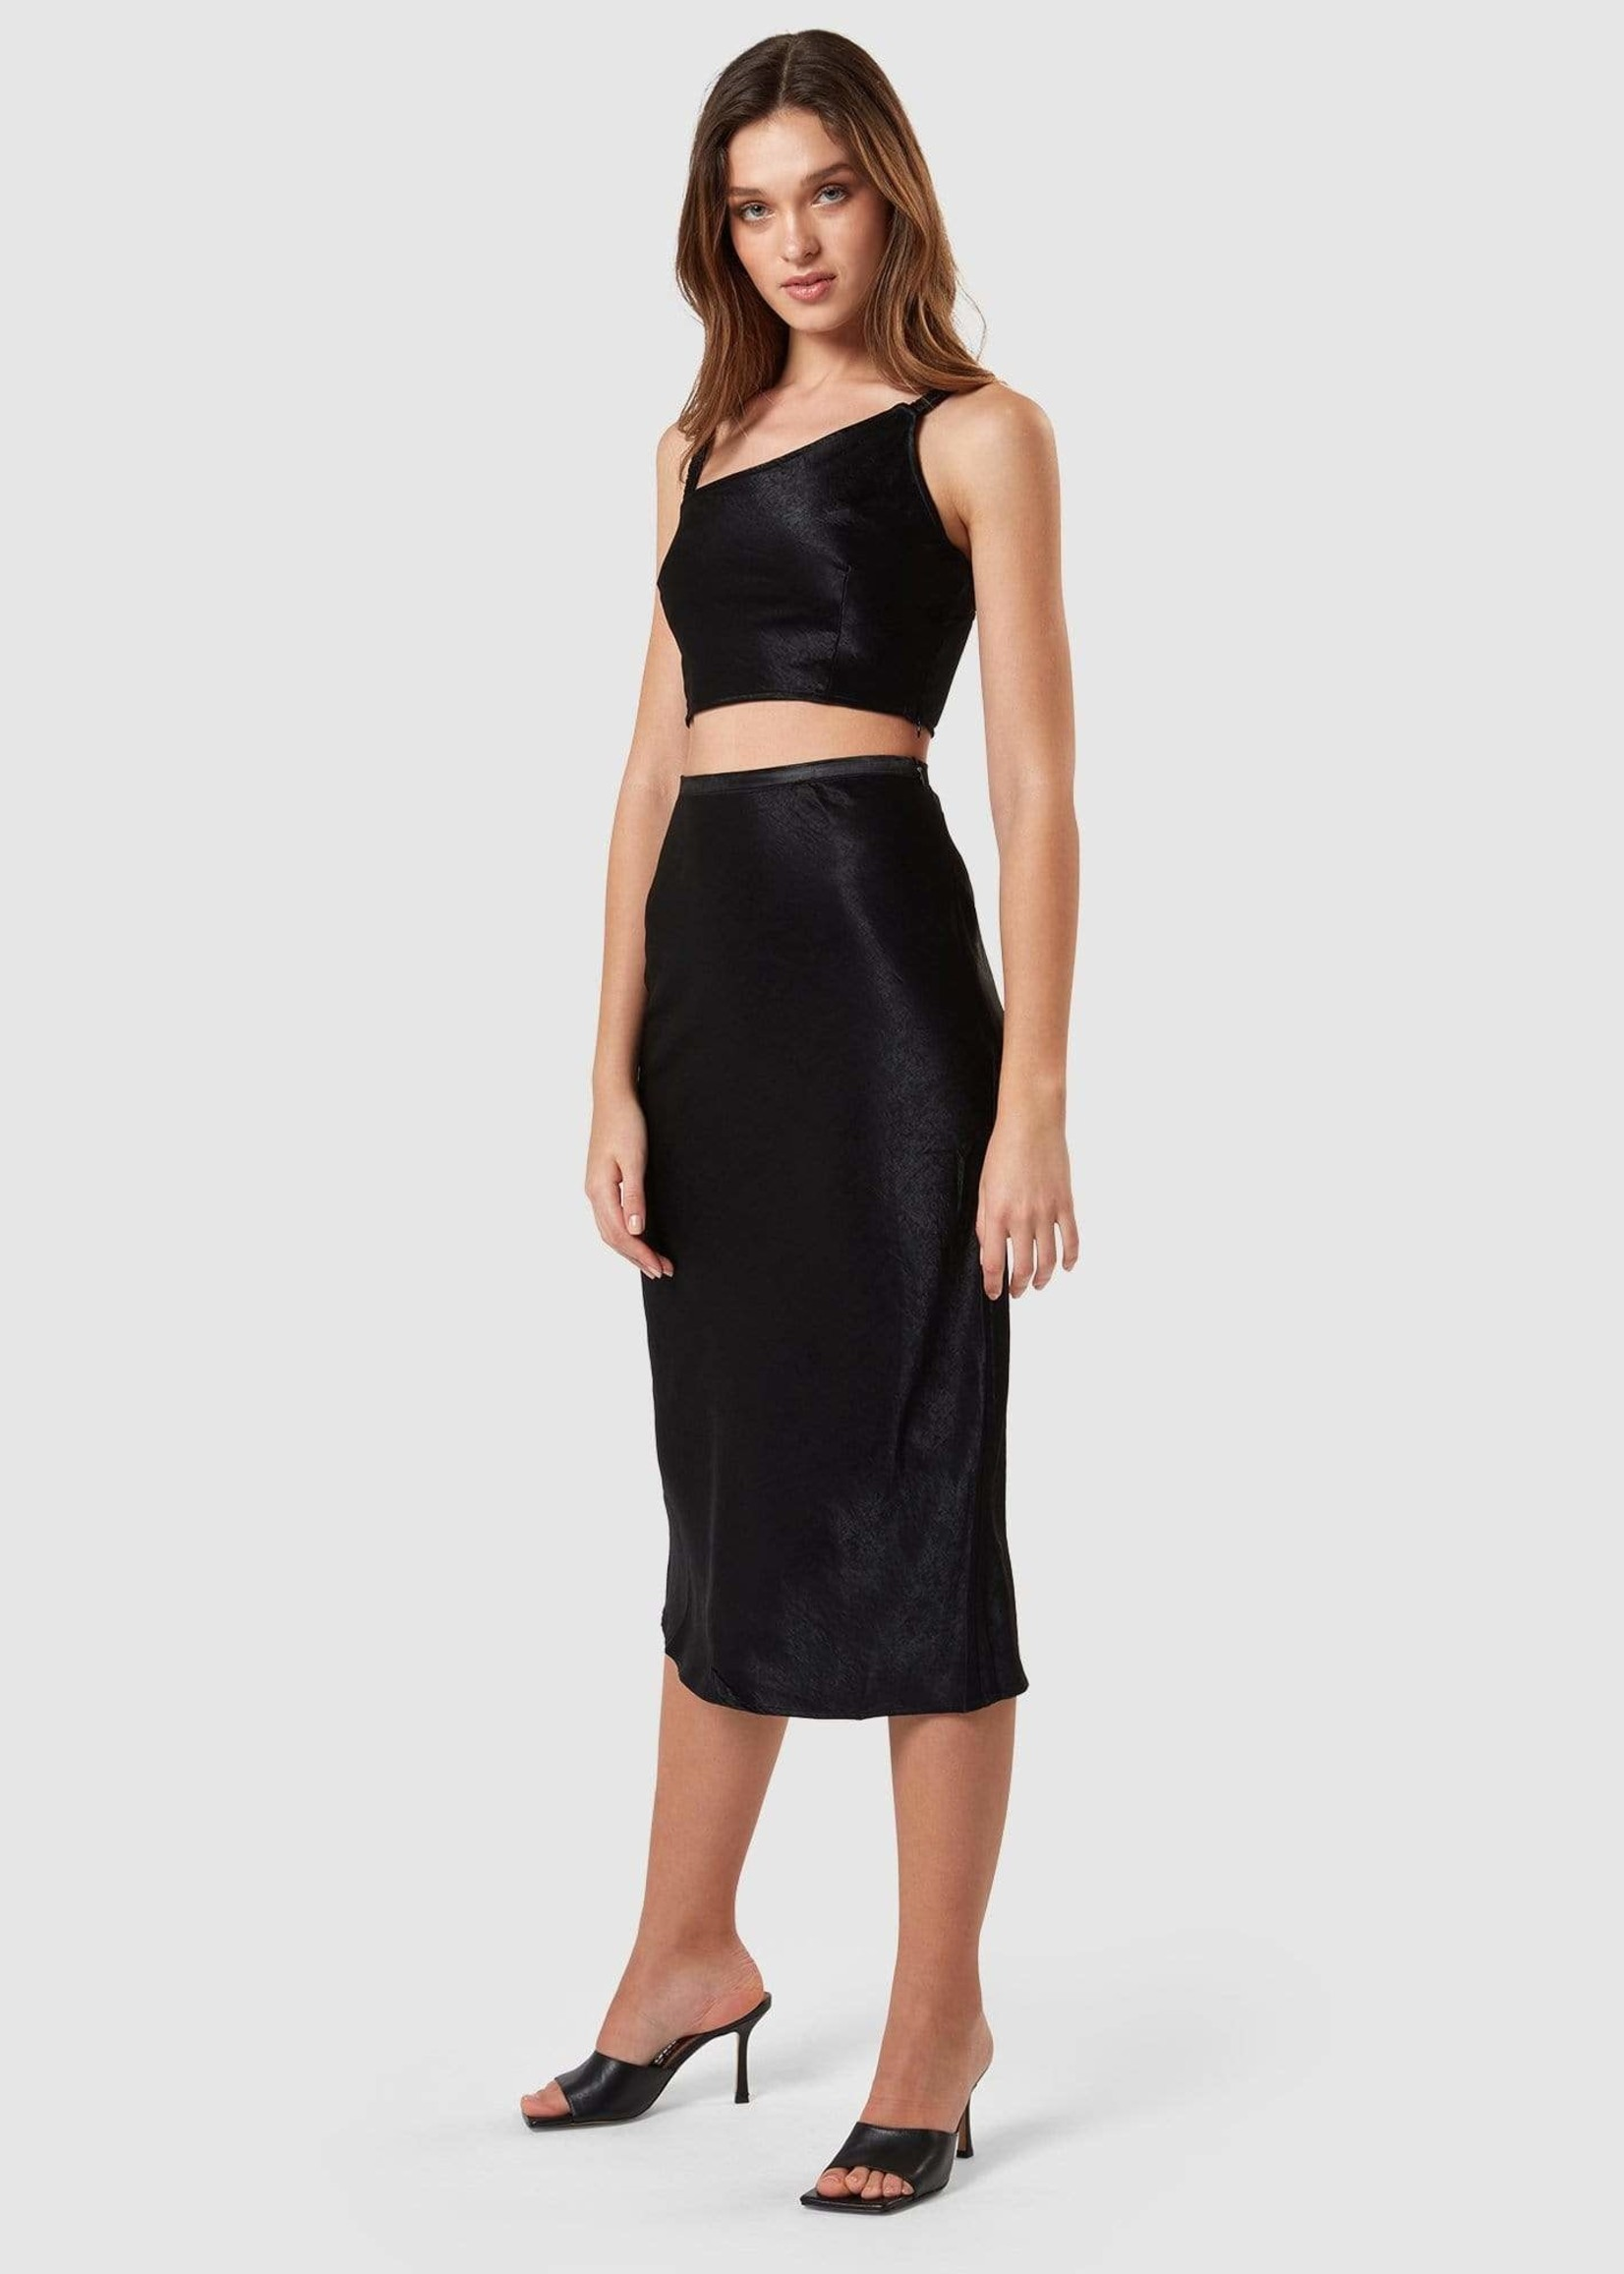 Elitaire Boutique Chelsea Black Skirt